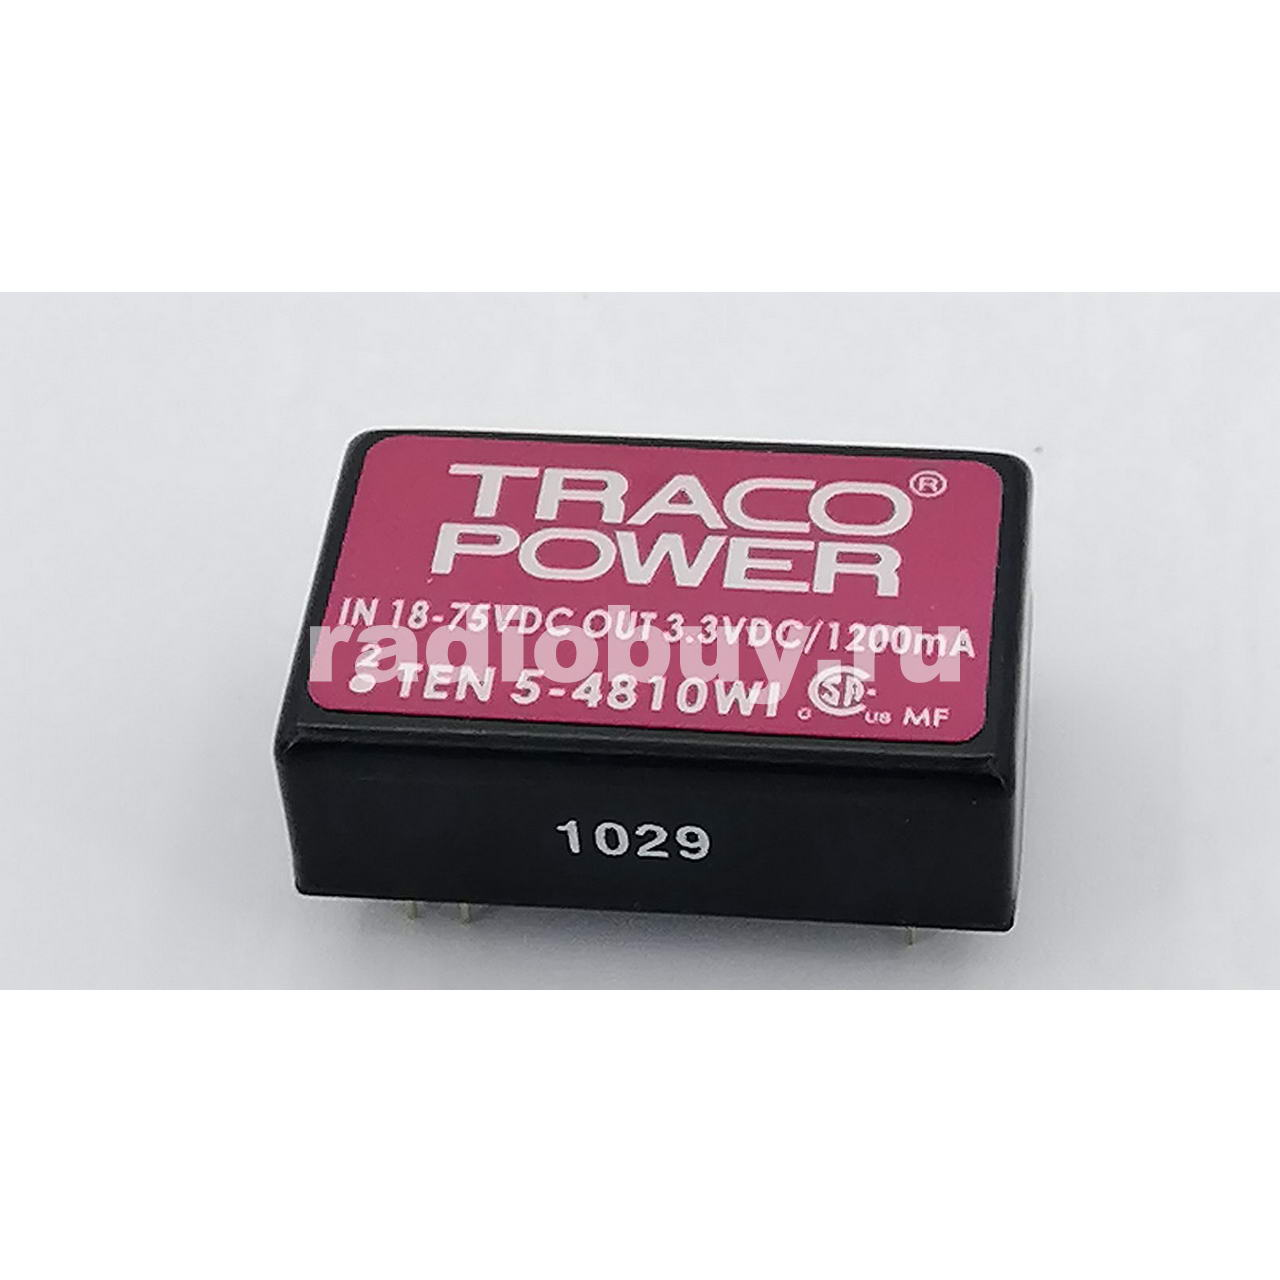 TEN5-4810WI TRACO POWER